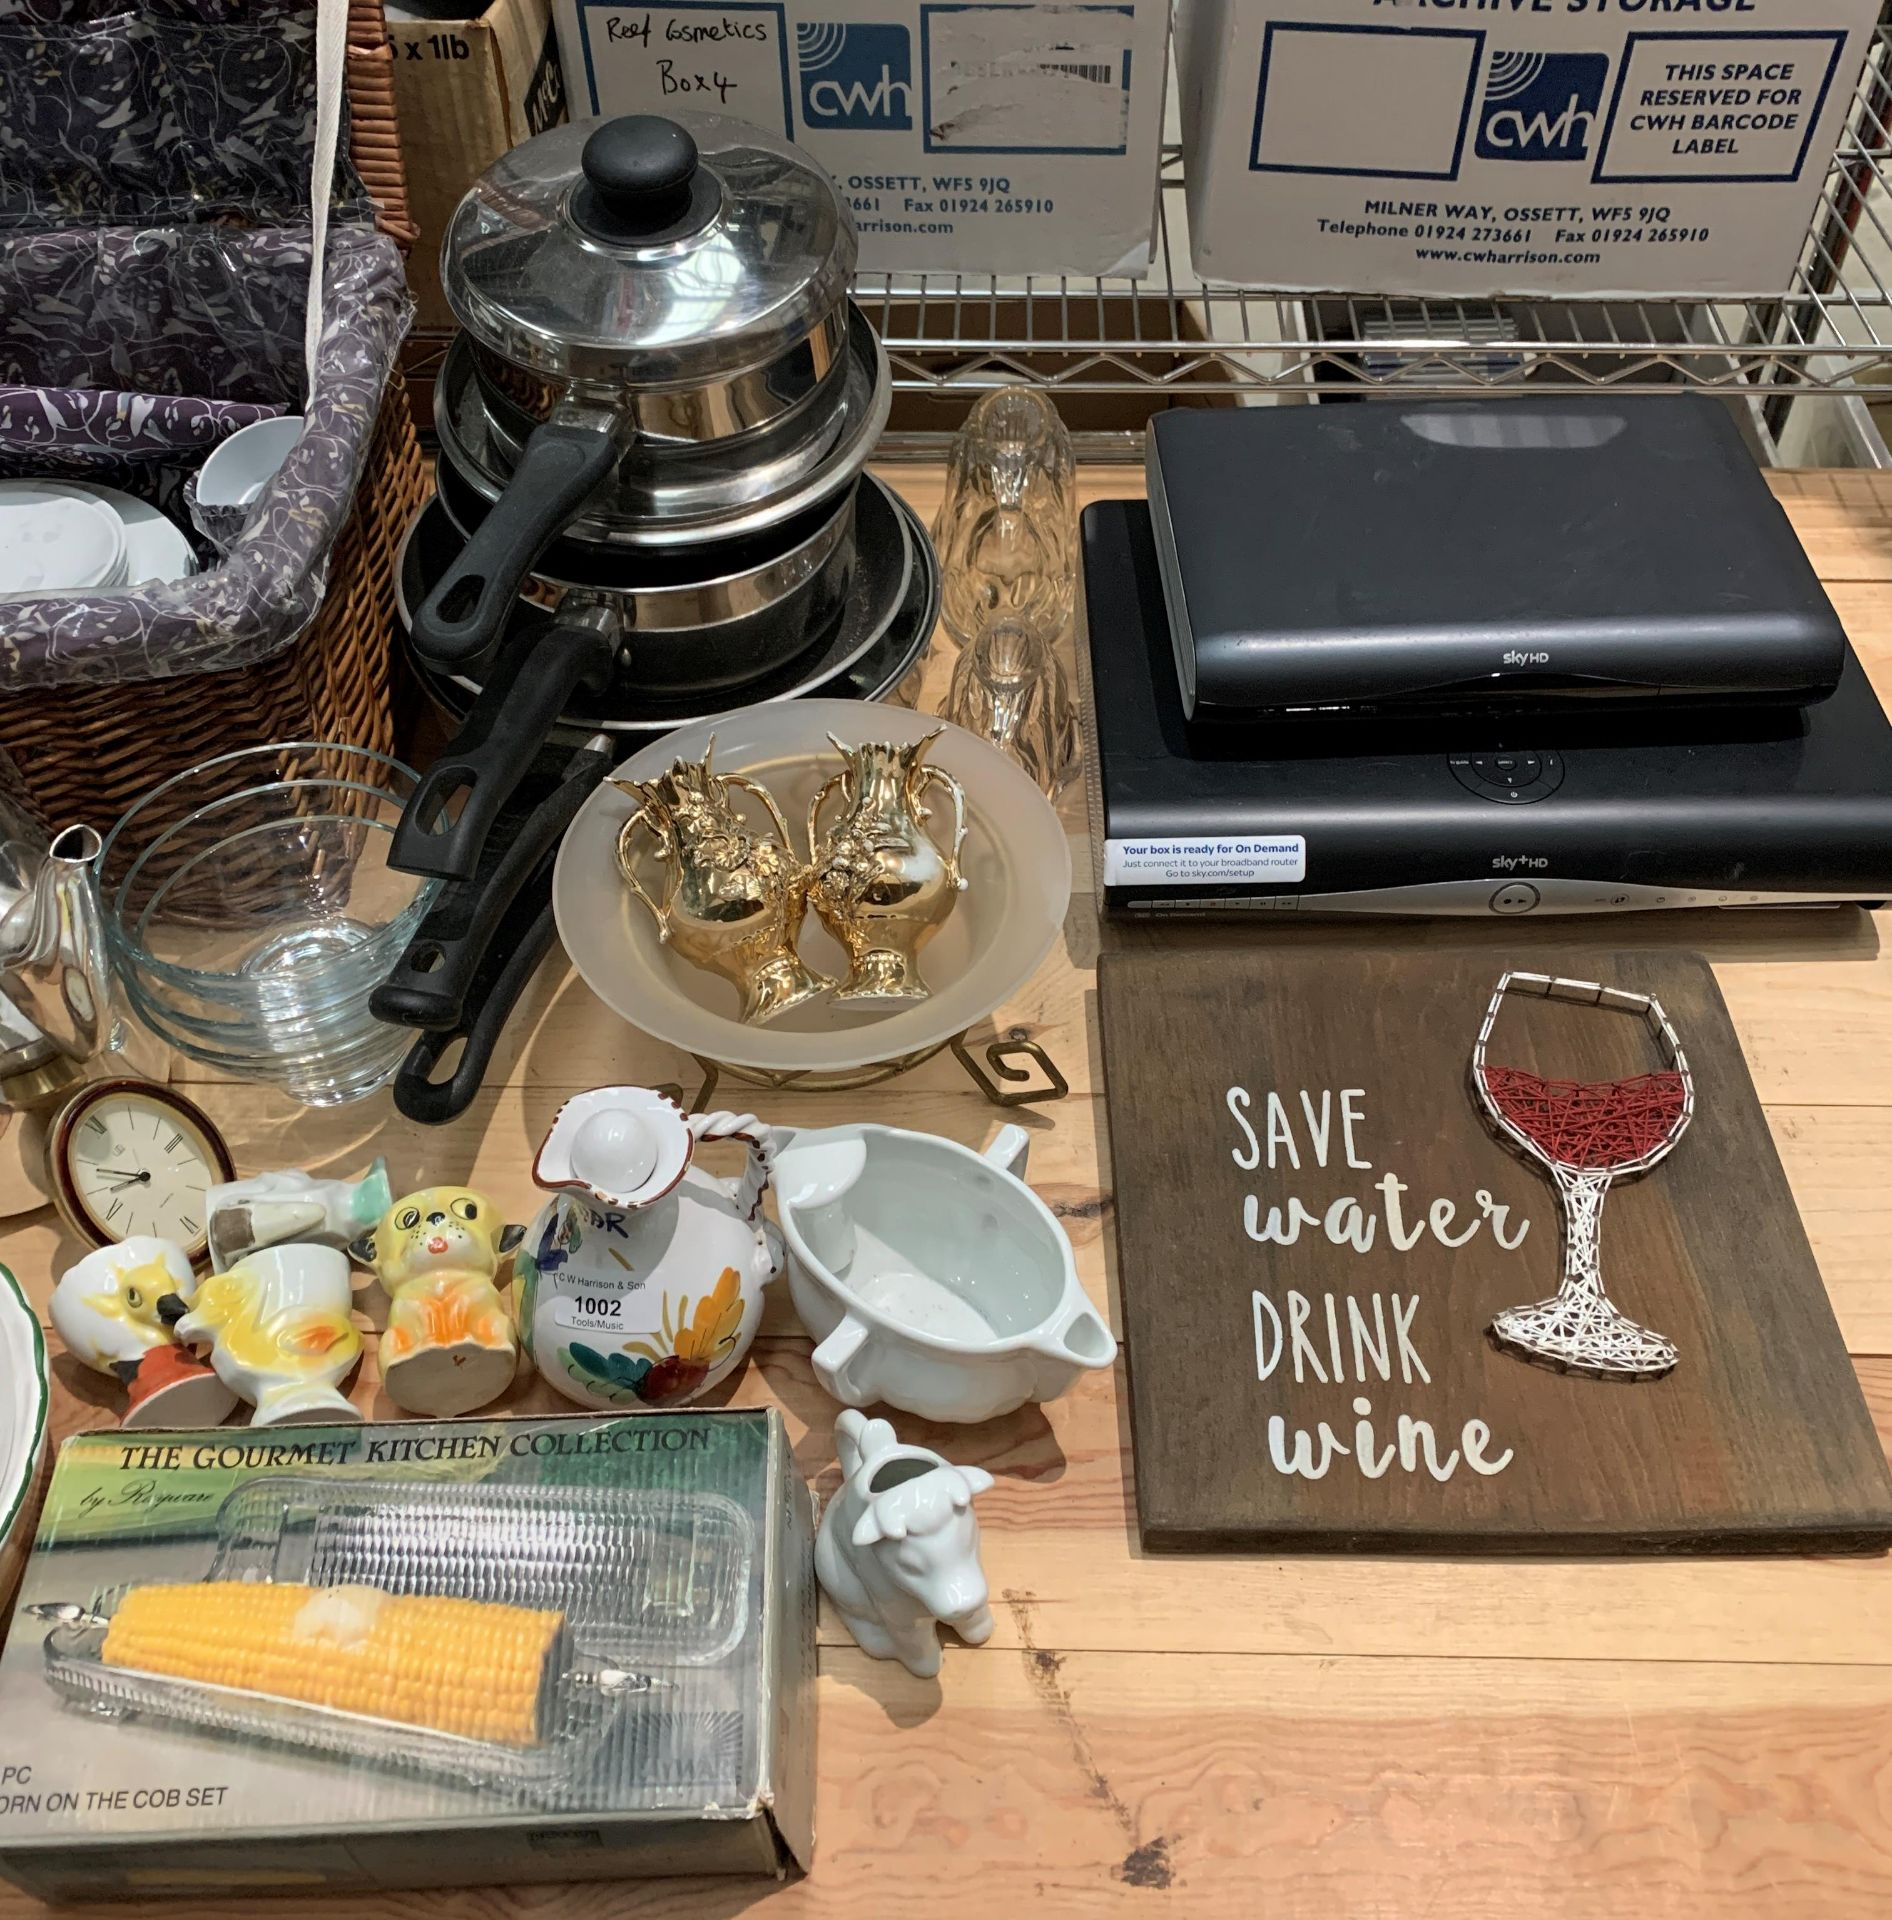 Contents to part table top - wicker picnic basket and part contents - pans, ceramic hen, - Image 3 of 3